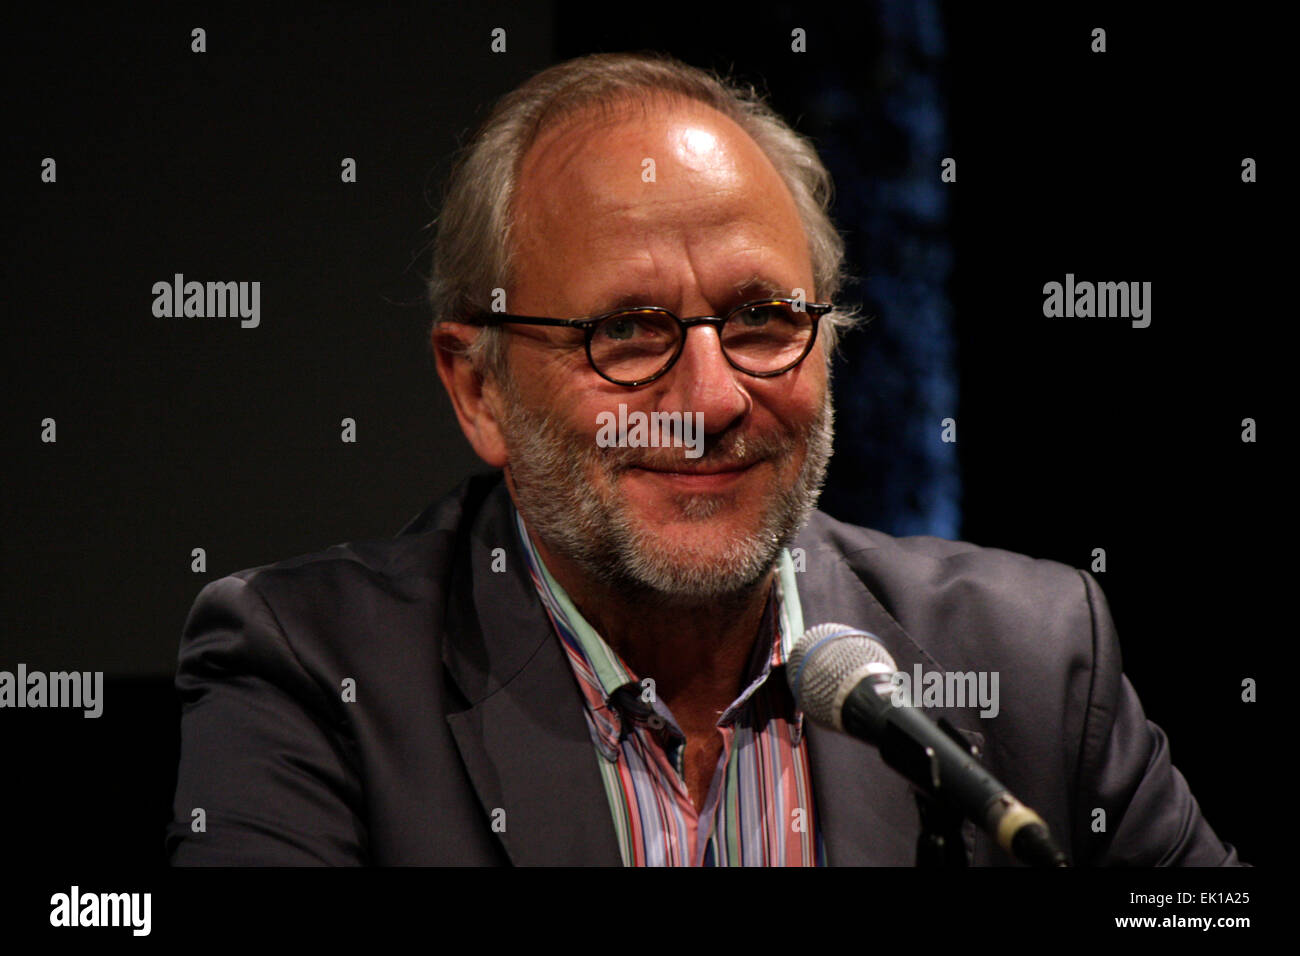 SEPTEMBER 14, 2013 - BERLIN: festival director Ulrich Schreiber at a press conference at the International Literature - Stock Image